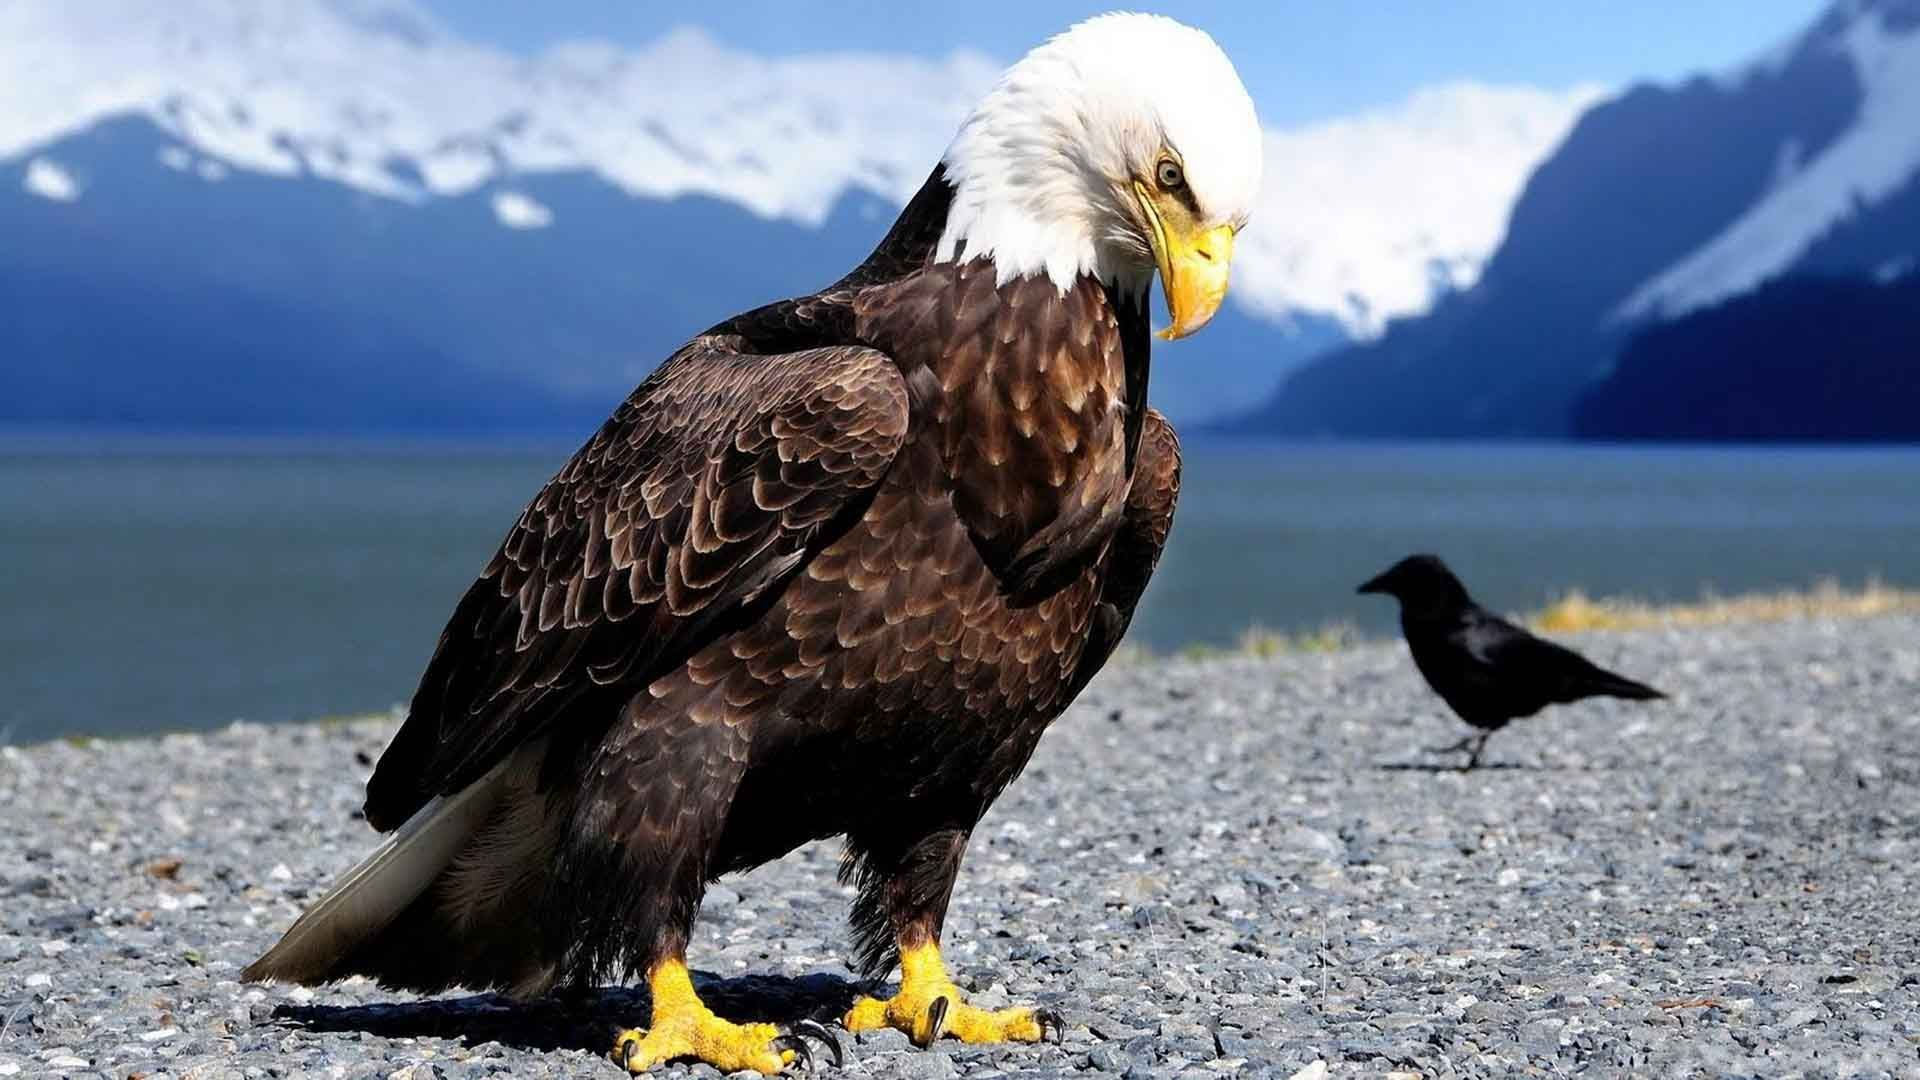 Eagle Wallpapers Download Free 1920×1080 Eagle Wallpapers Free ...